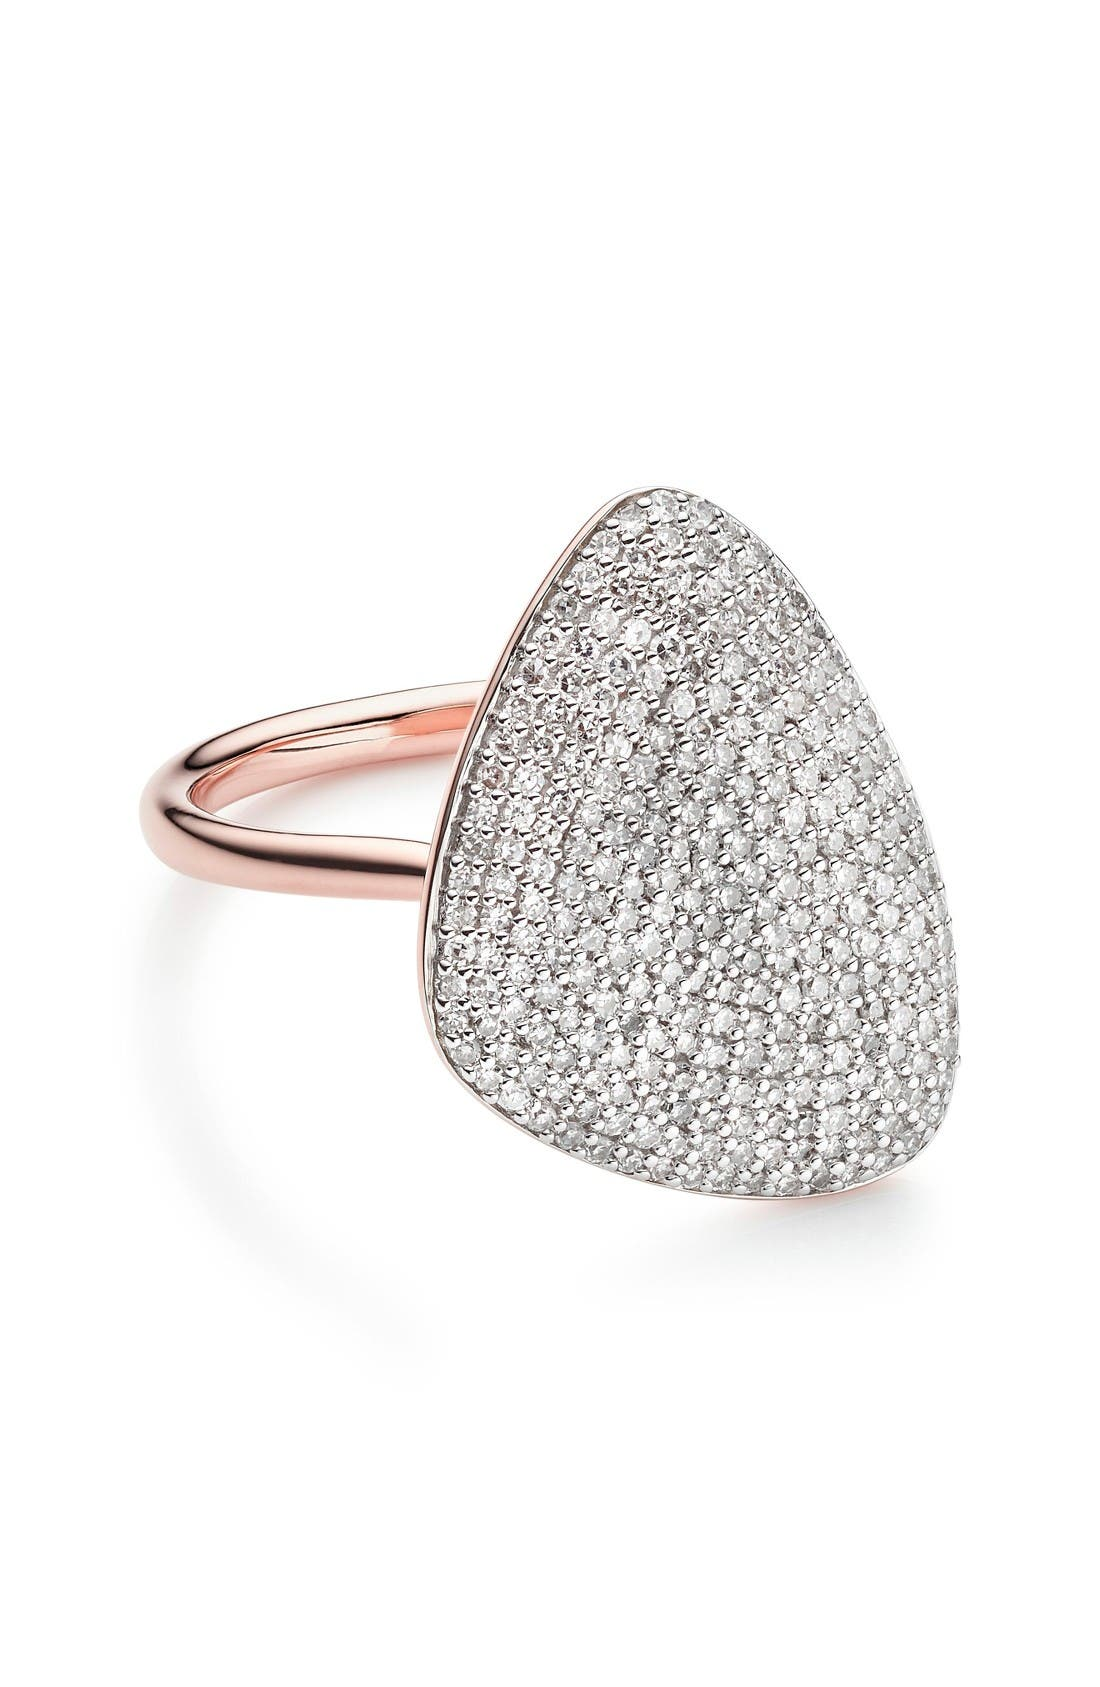 MONICA VINADER Nura Diamond Teardrop Ring